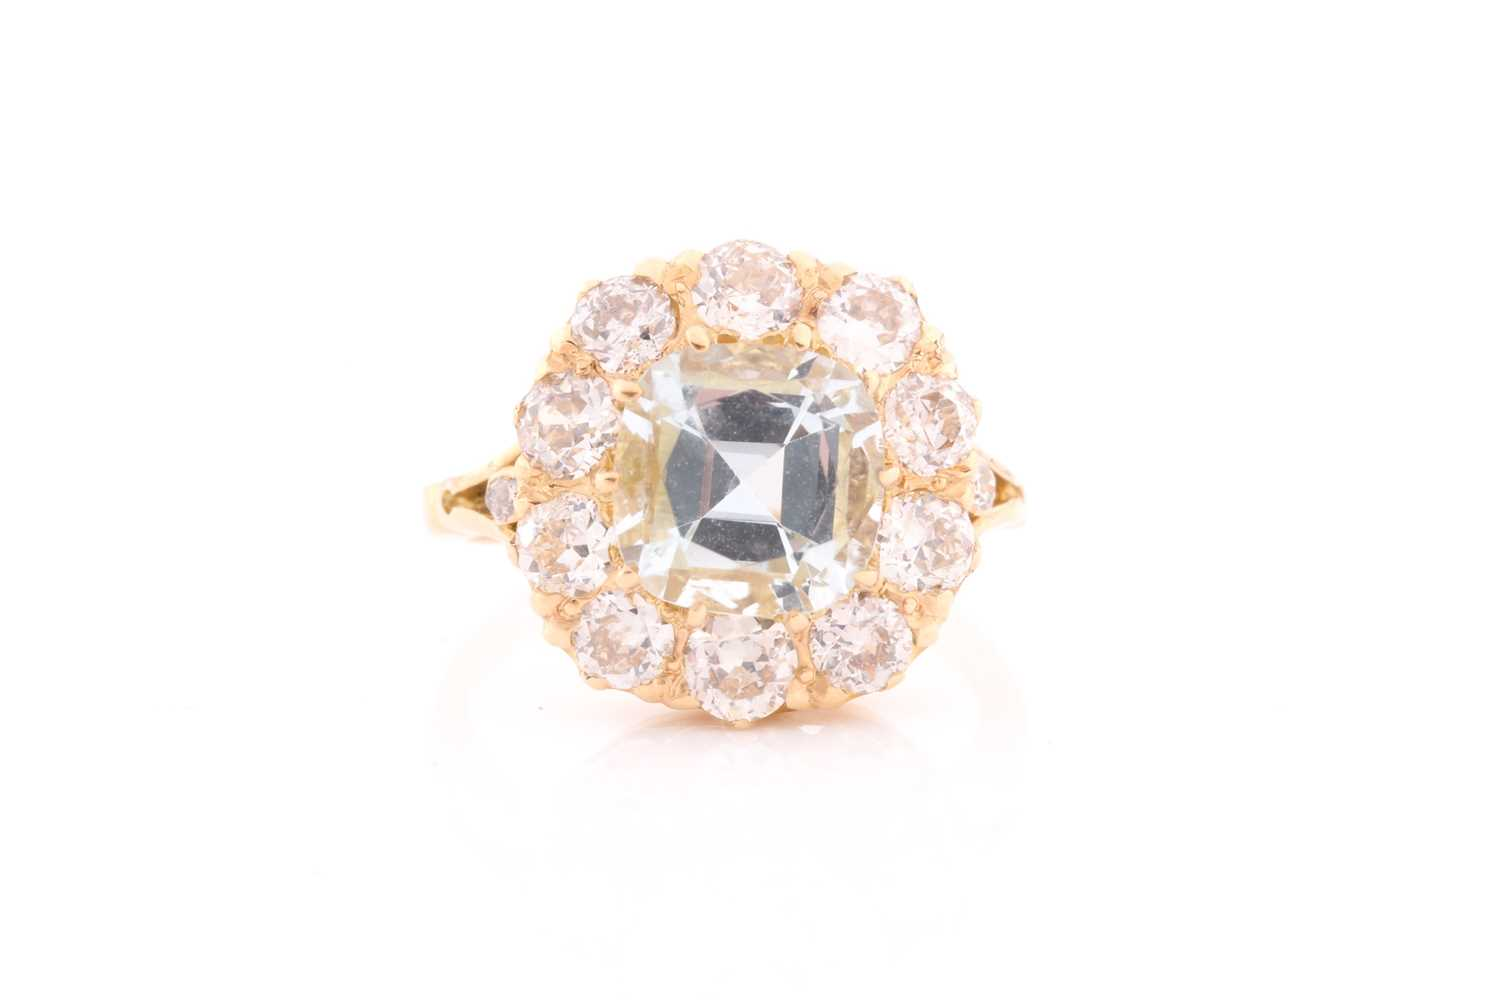 An 18ct yellow gold, diamond, and aquamarine cluster ring, set with a cushion-cut aquamarine of